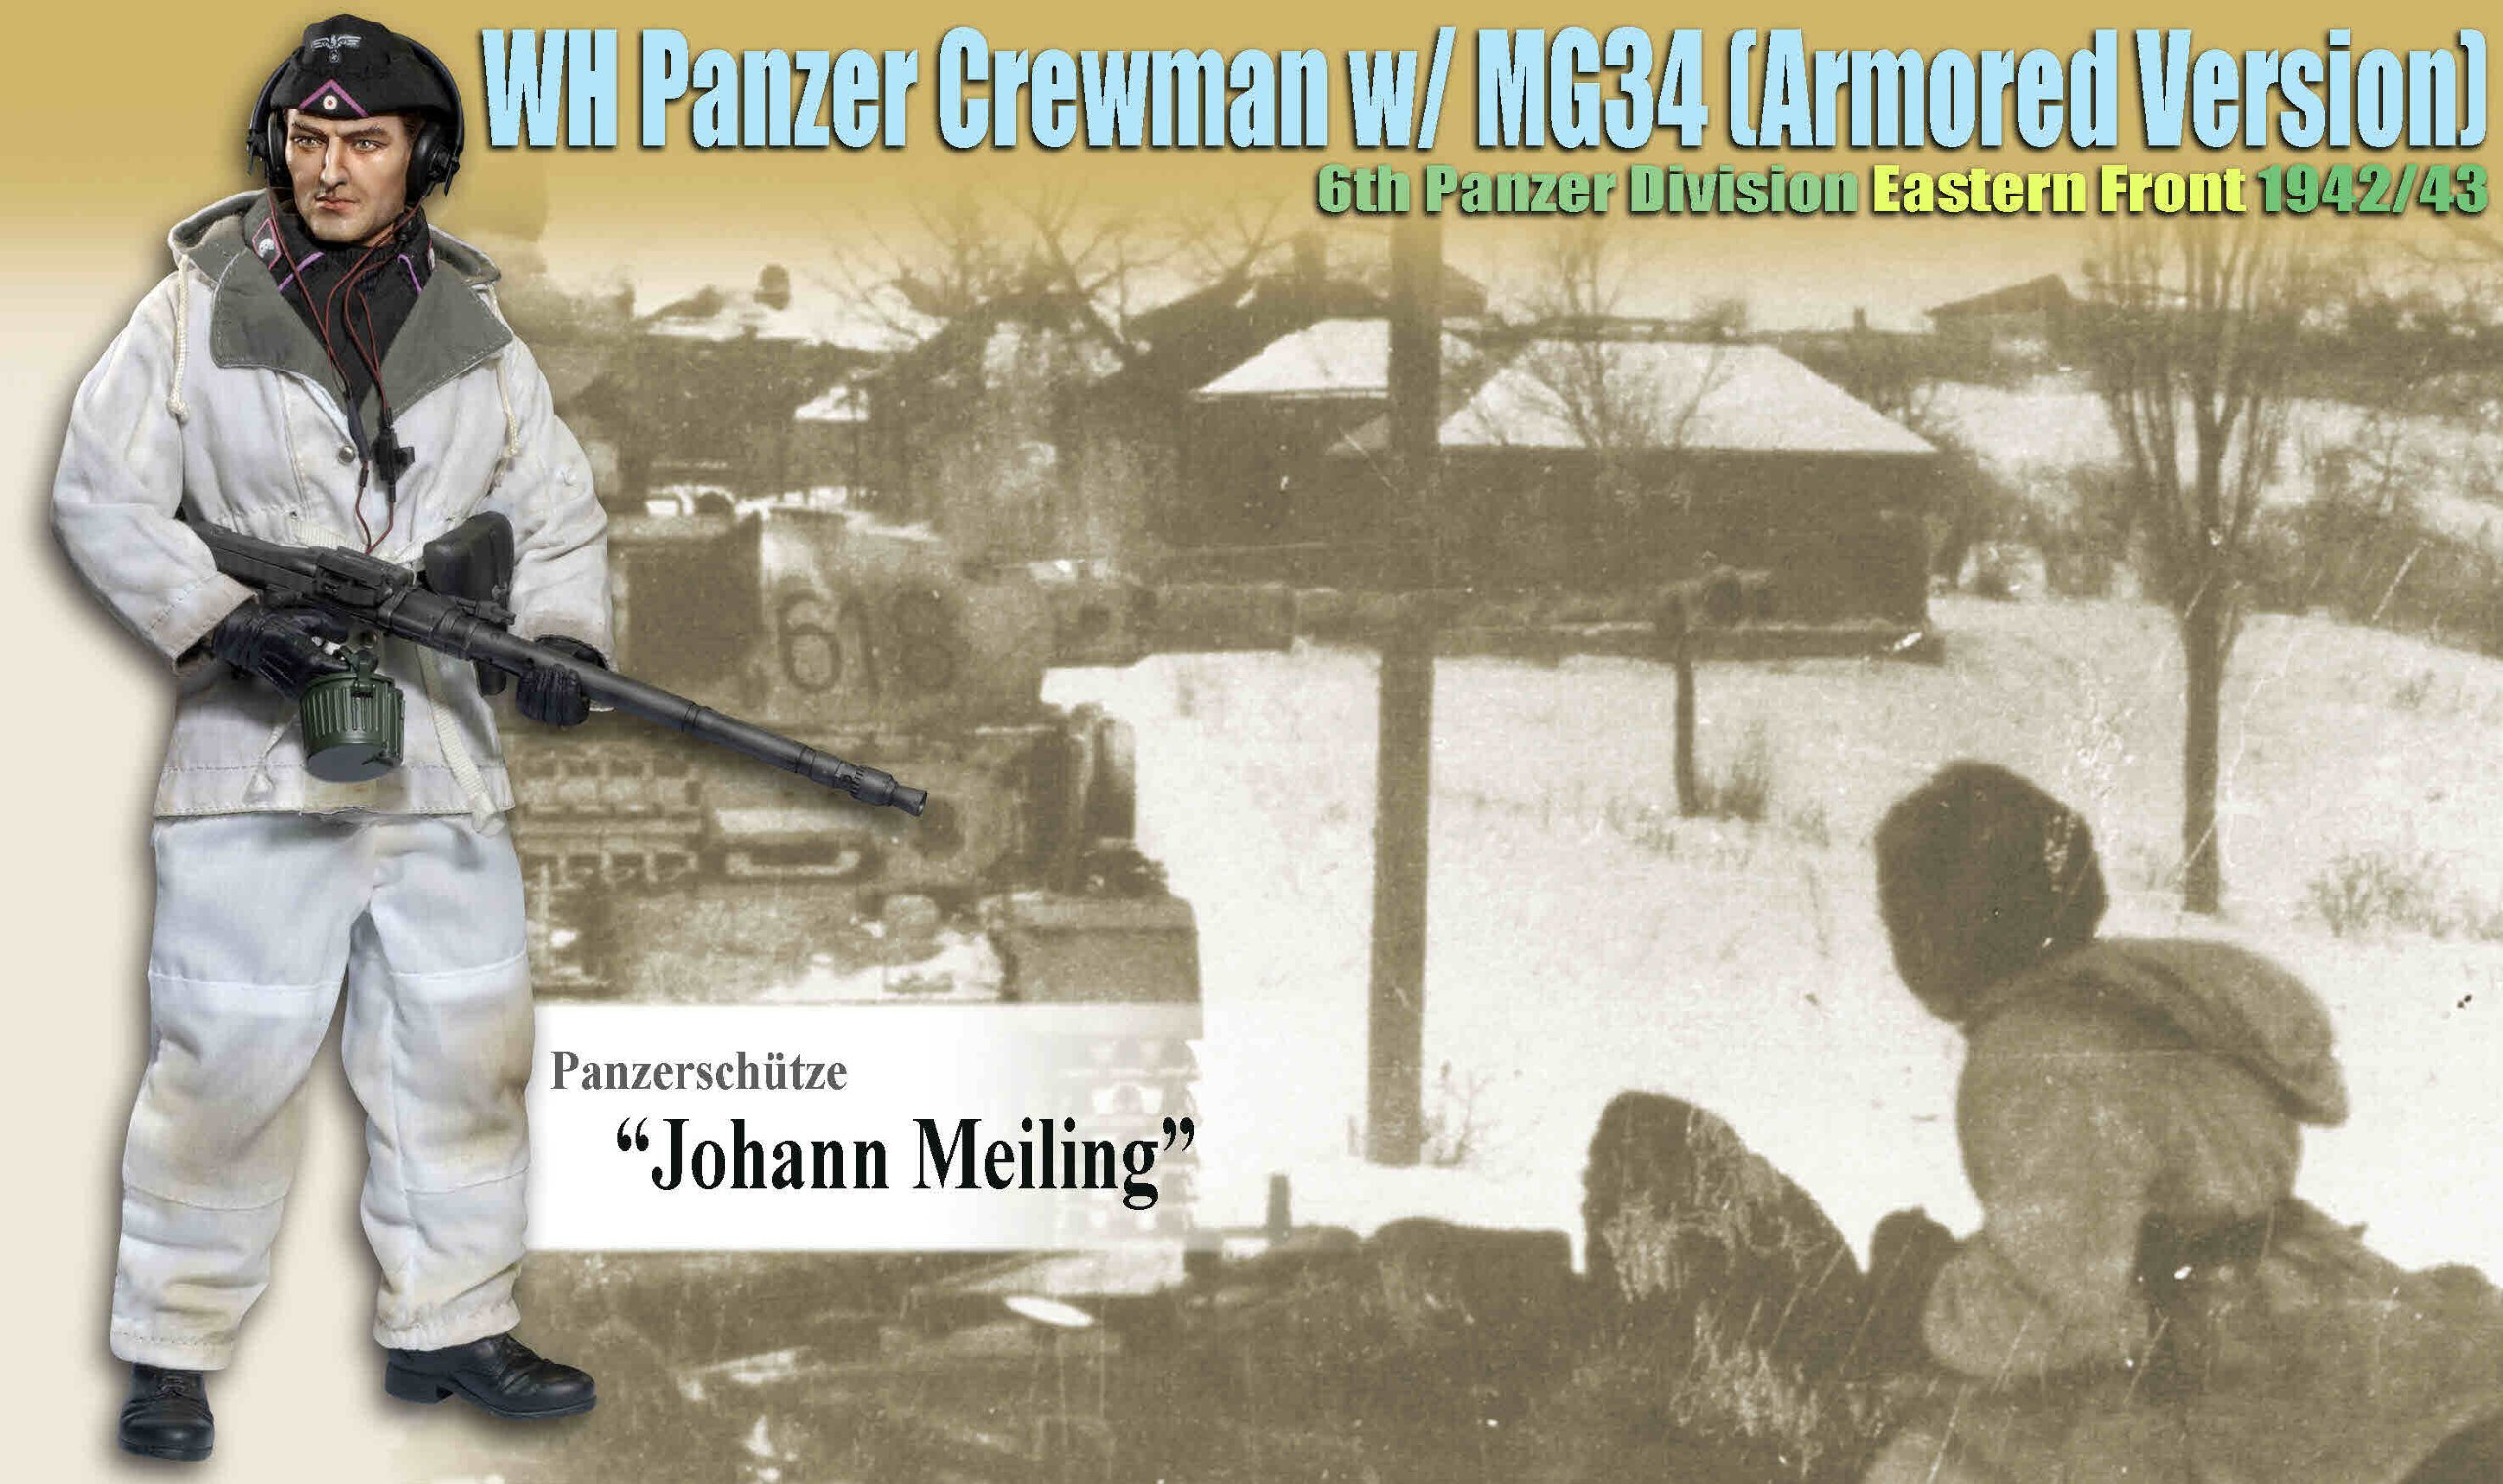 Dragon Models 1/6 ''Johann Meiling'' (Panzerschtze) - WH Panzer Crewman w/MG34 (Armored Version) 6th Panzer Division, Eastern Front 1942/43 by Dragon Models USA (Image #2)